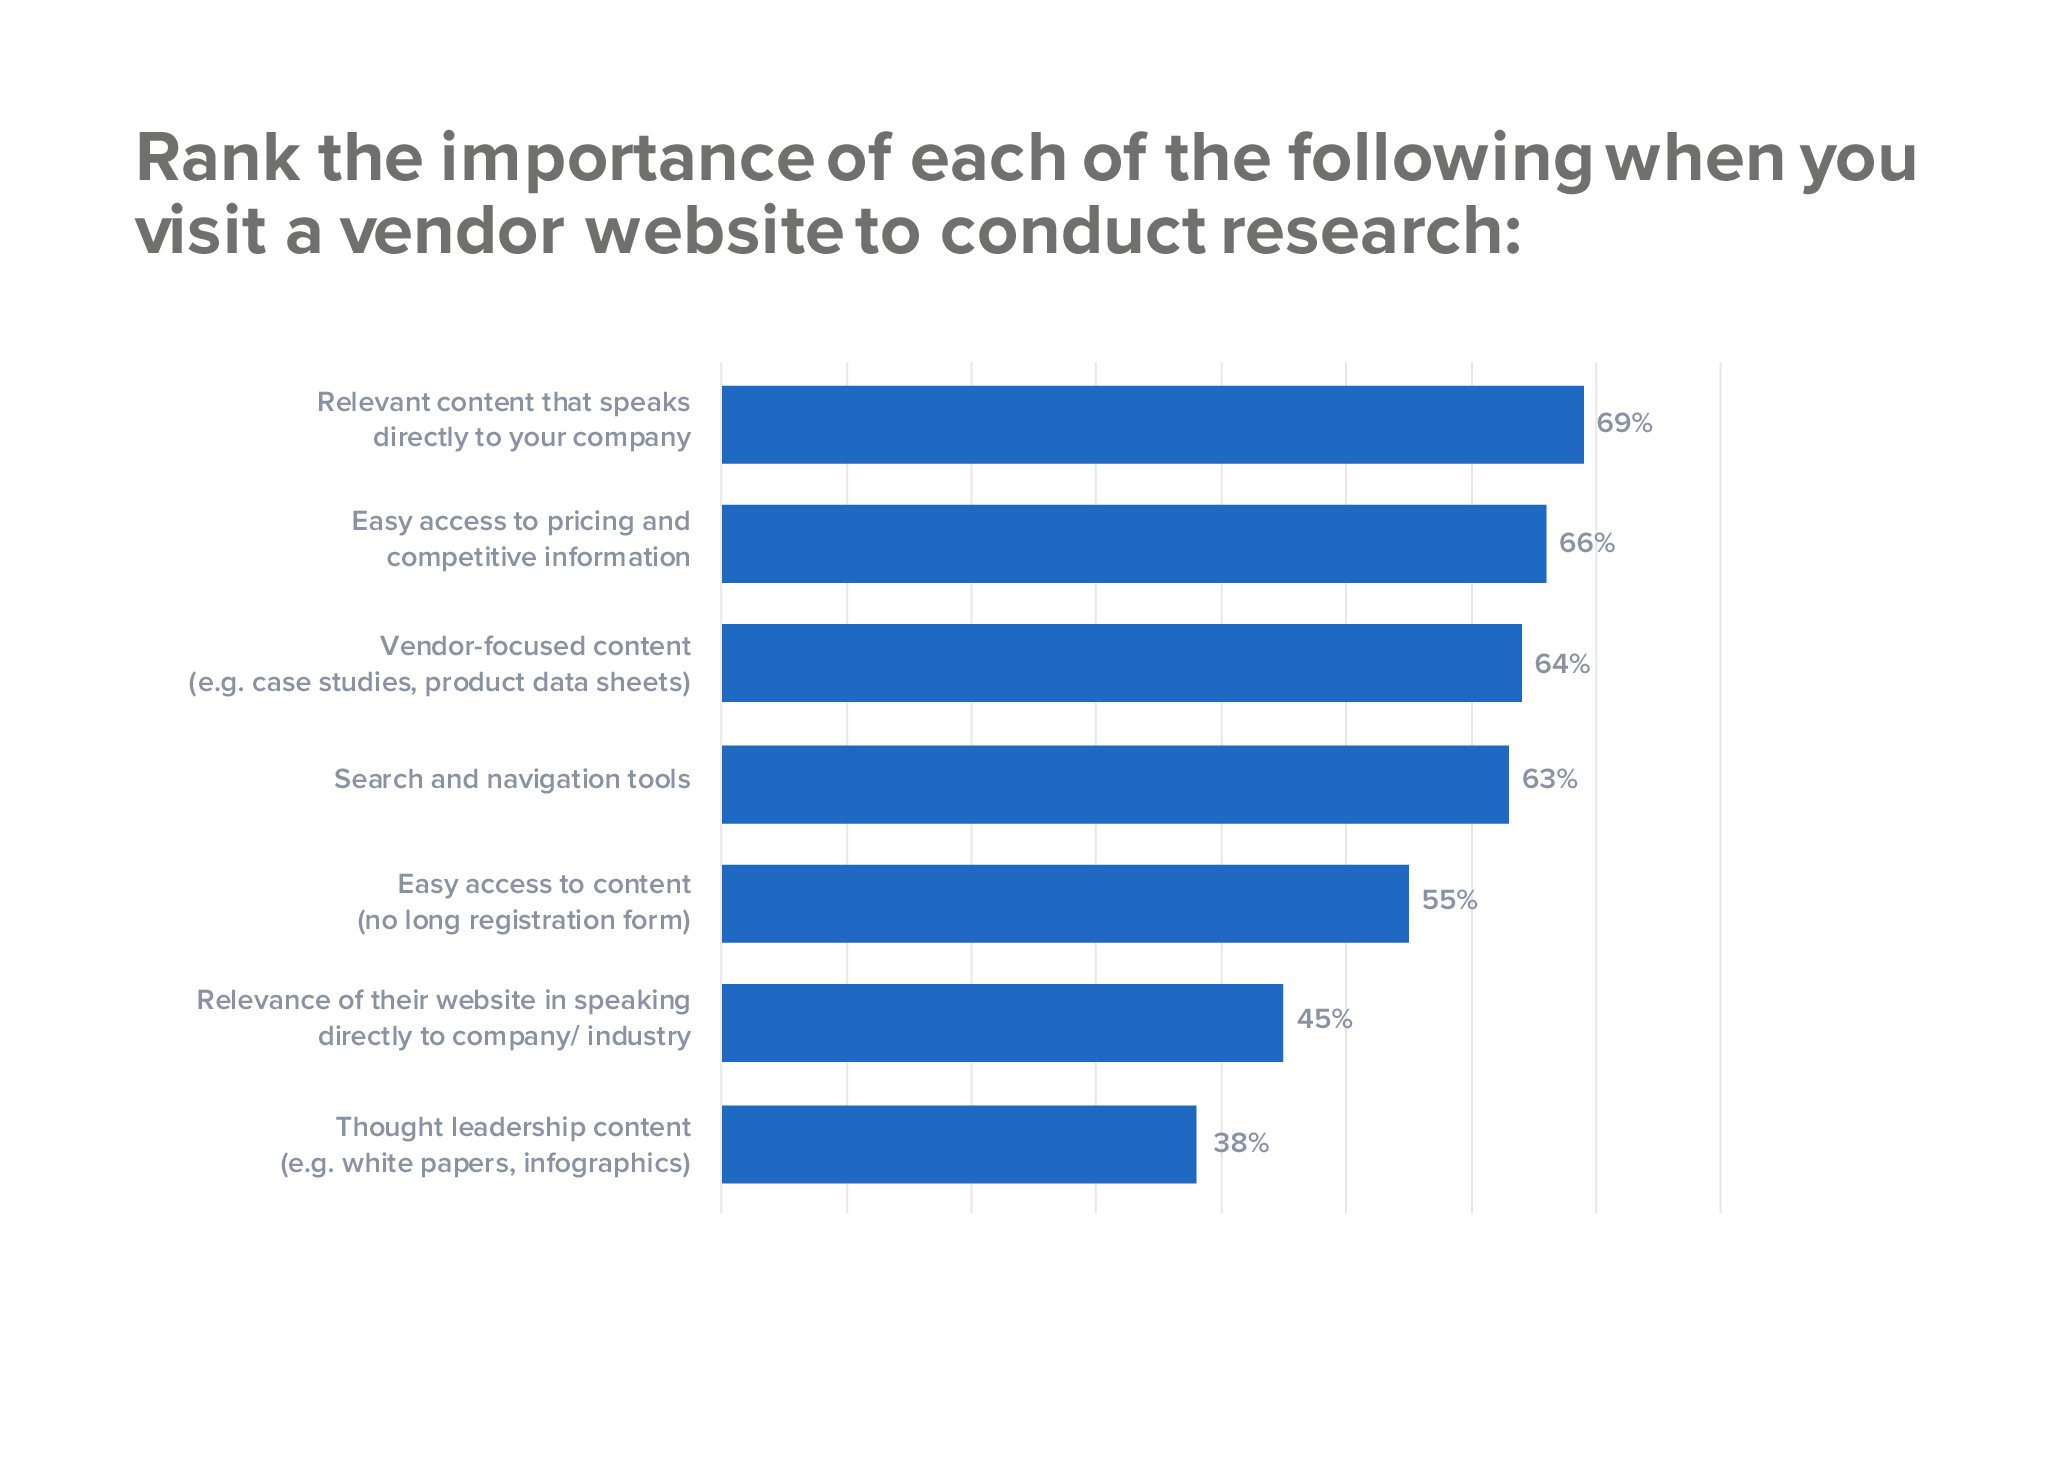 Importance of content to B2B buyers from vendors